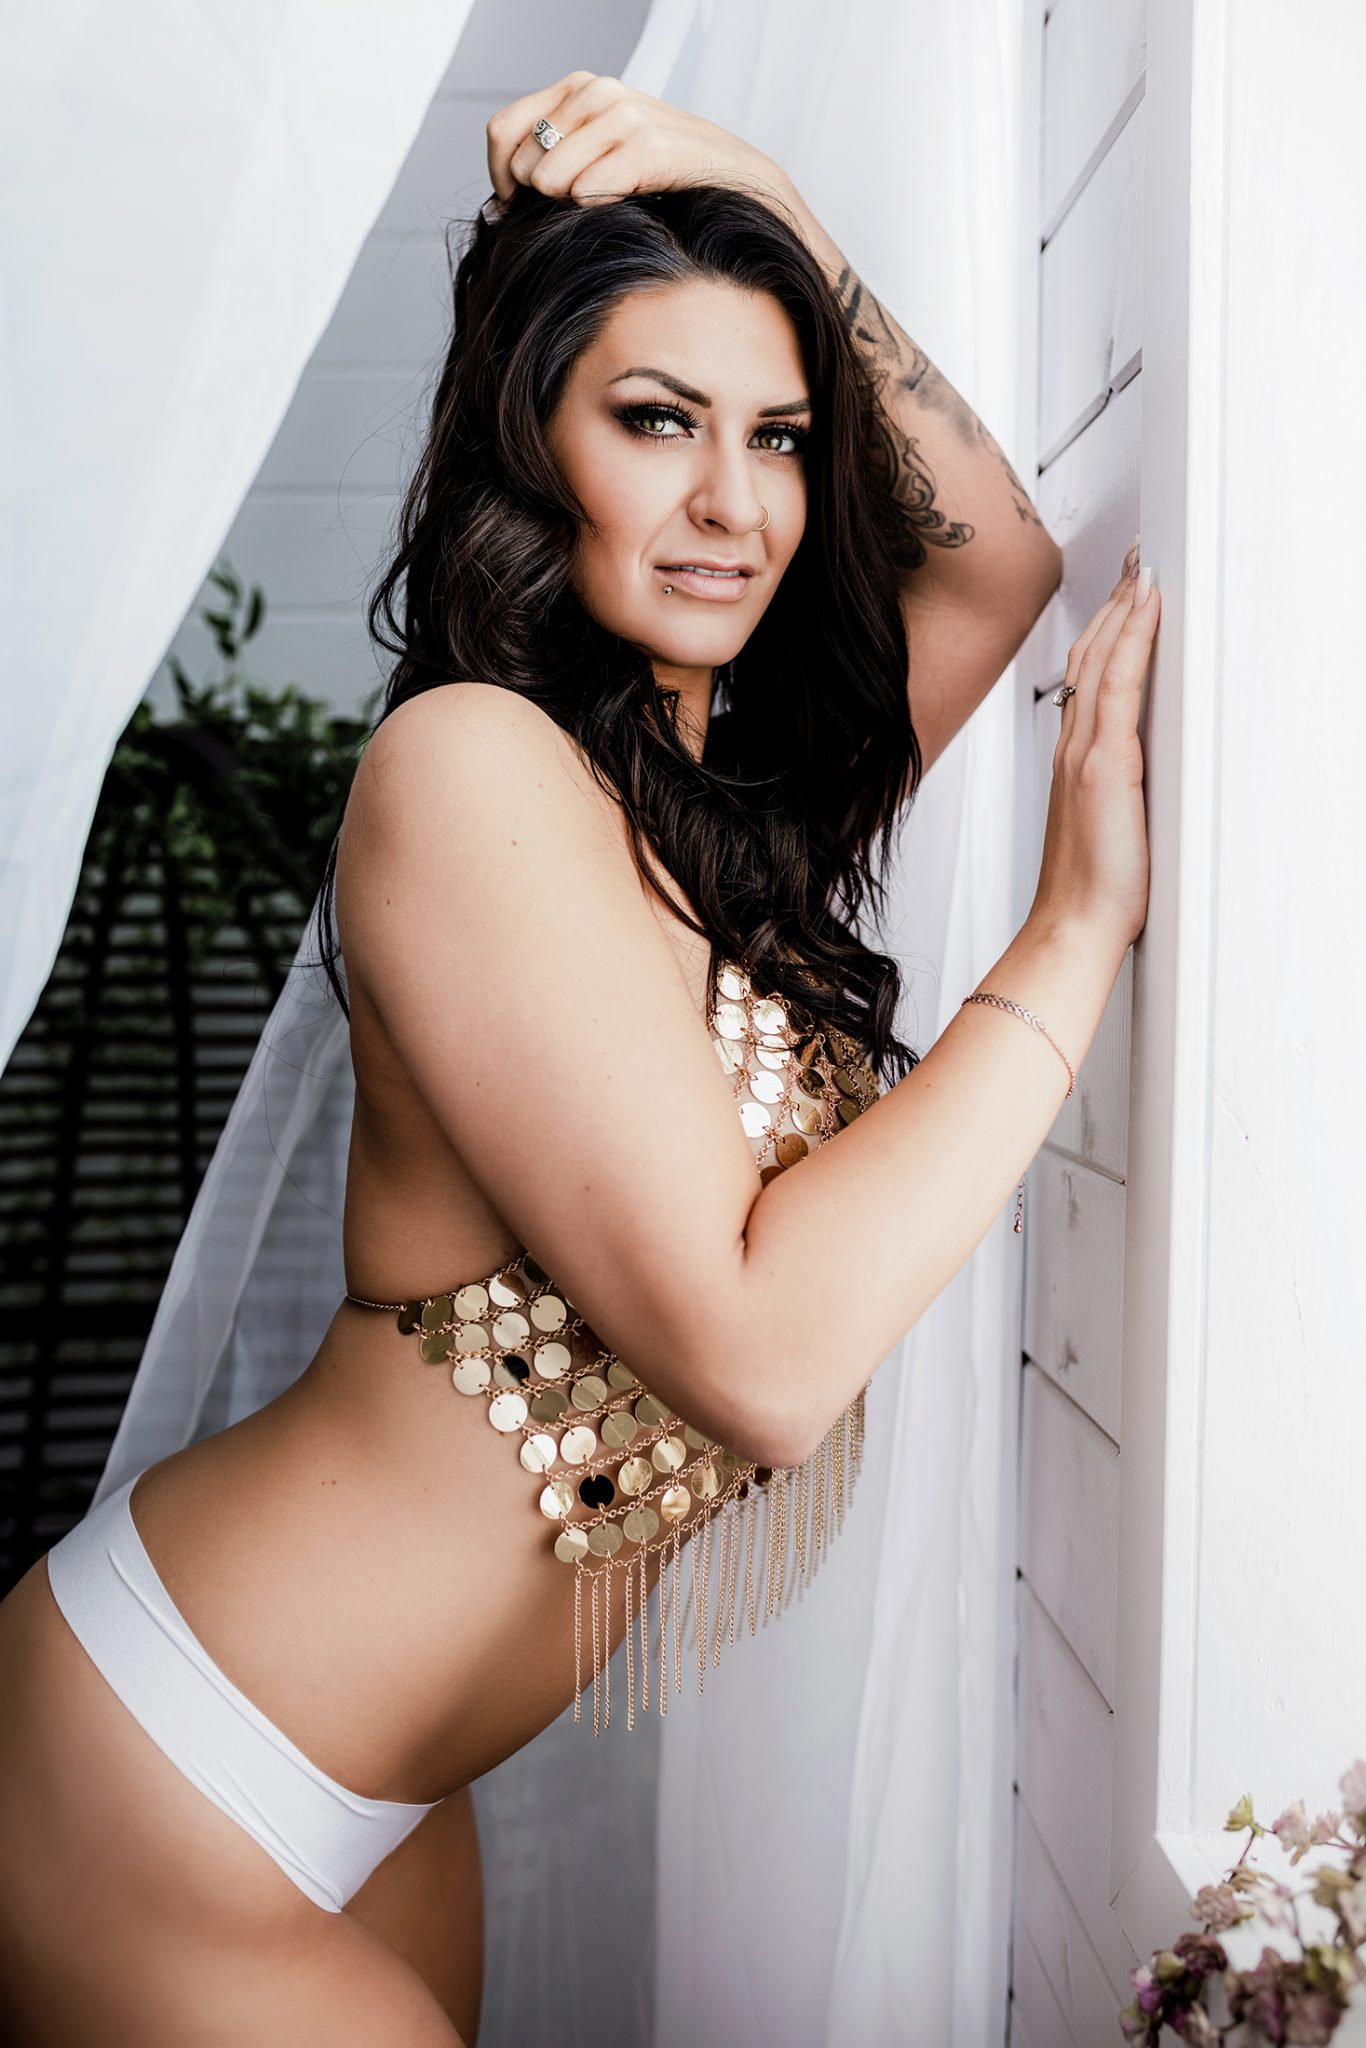 Boudoir photography inside the studio wearing a golden body chain and white underwear